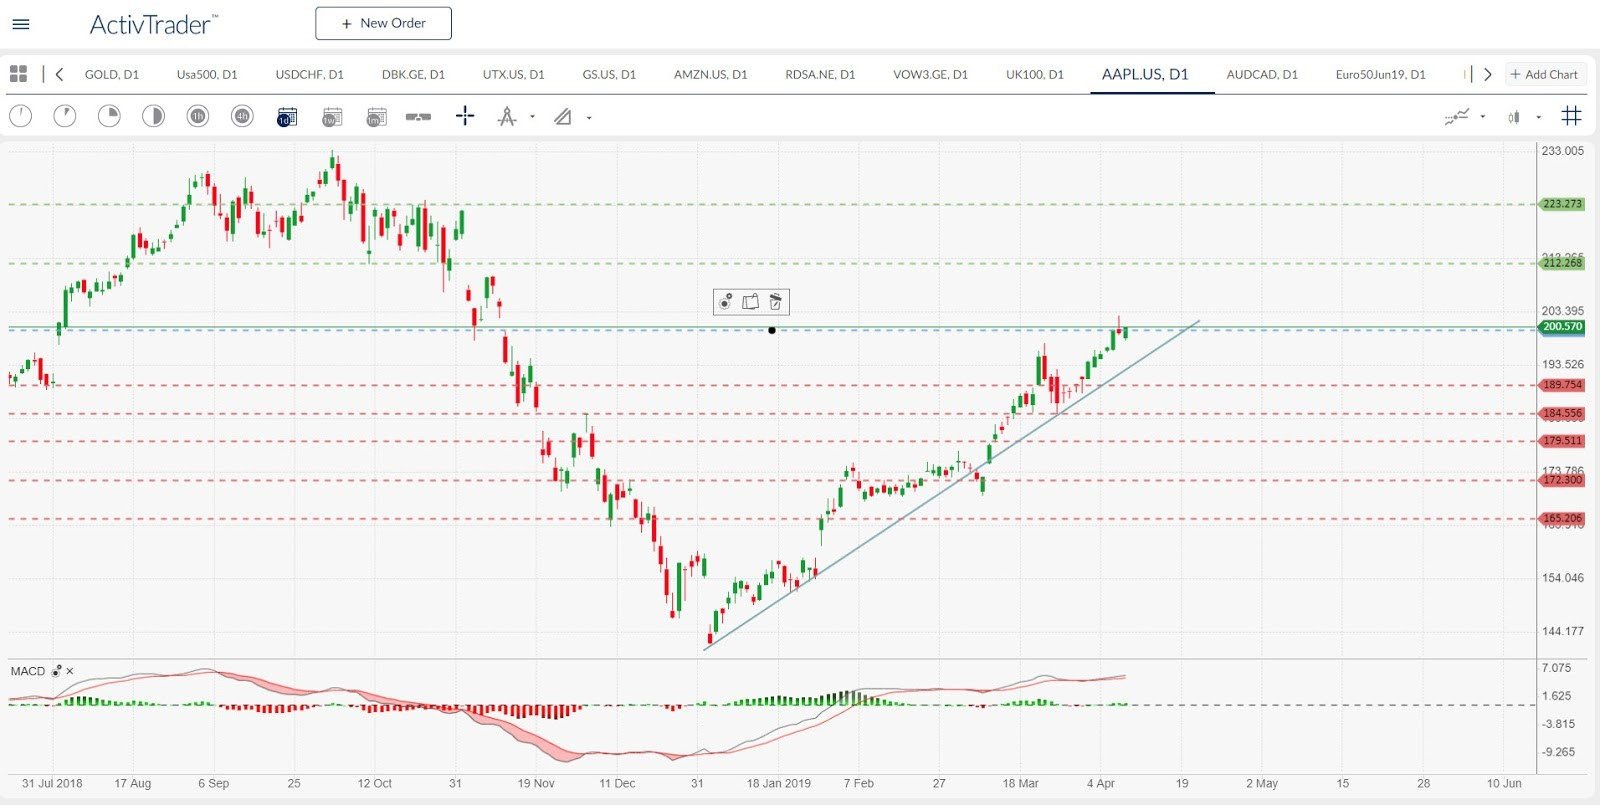 Aapl.US - daily chart. Source: ActivTrader